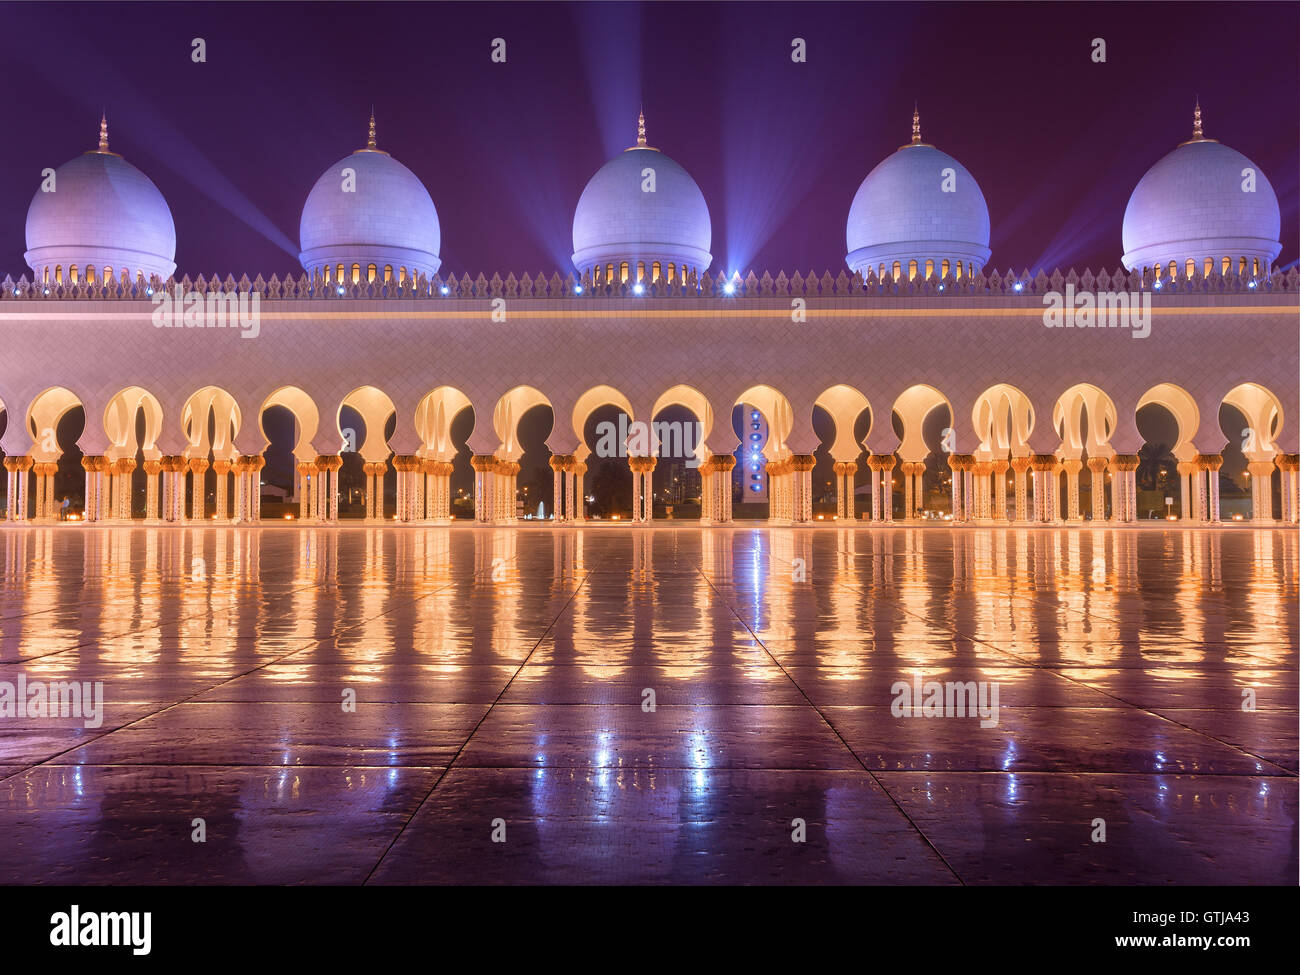 Sheikh Zayed Grand Mosque in Abudhabi sending beautiful light rays - Stock Image